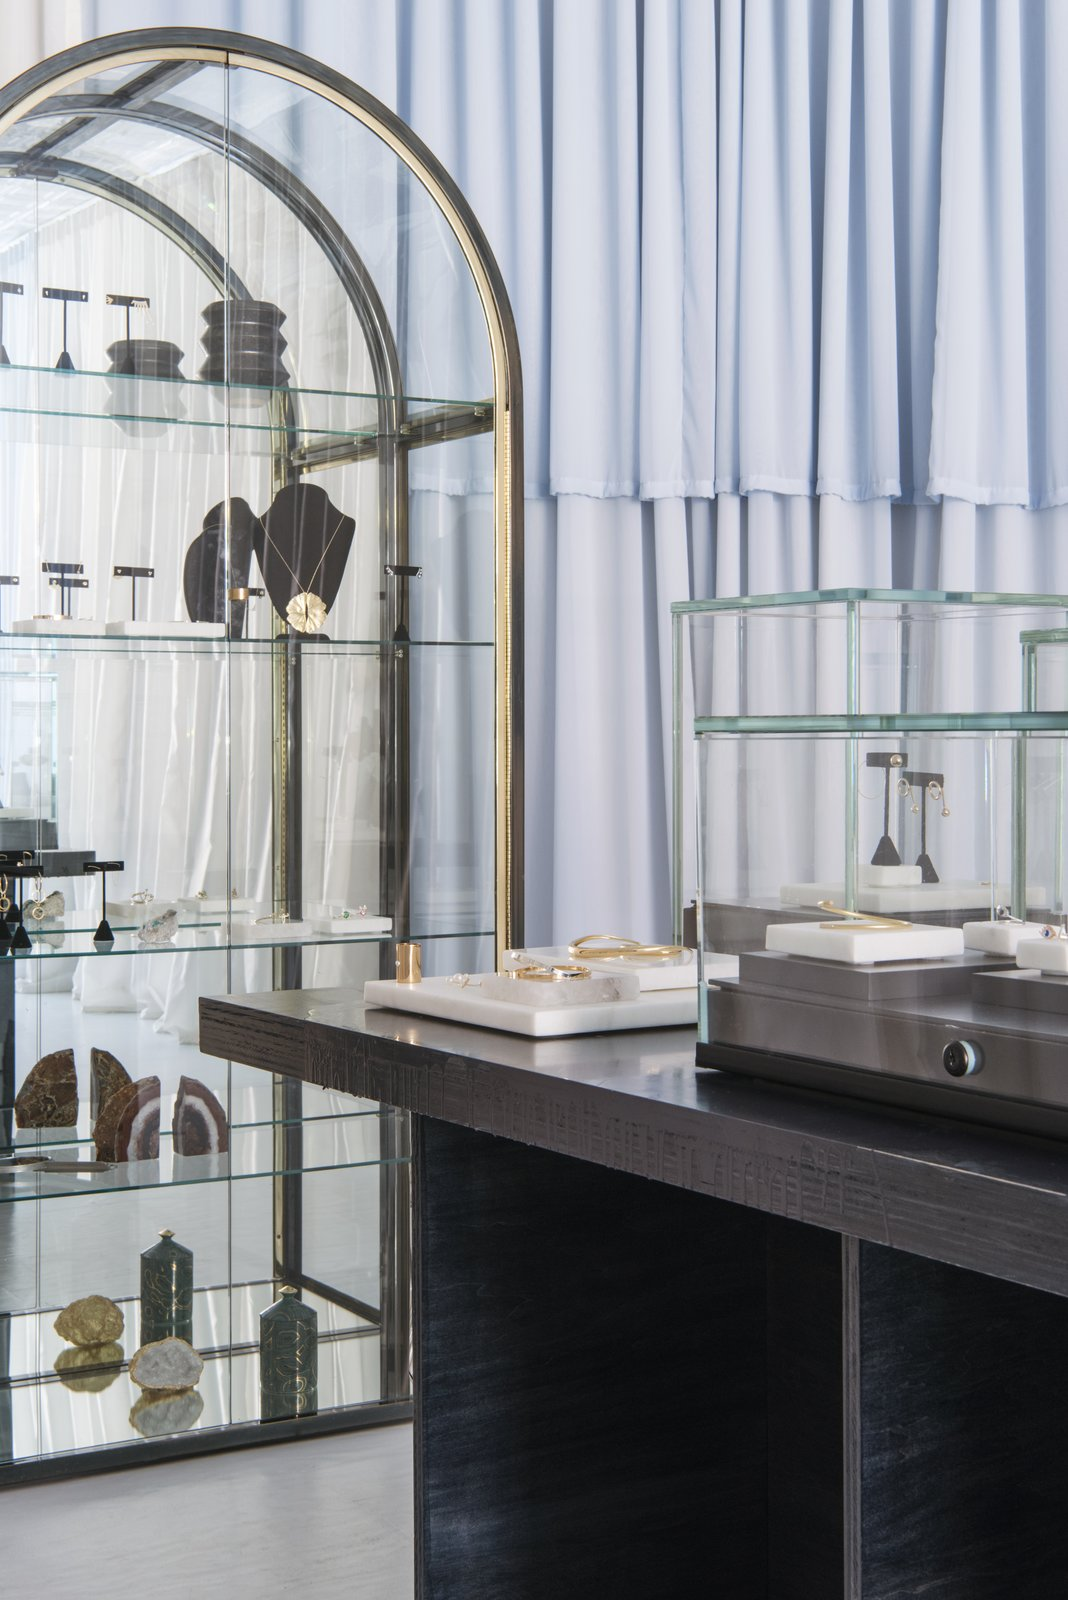 A vintage mirrored case by the Design Institute of America from the 1970s displays select treasures on the back wall of the shop.  Photo 5 of 7 in This Brooklyn Boutique Is an Oasis of Calm in the Busy City